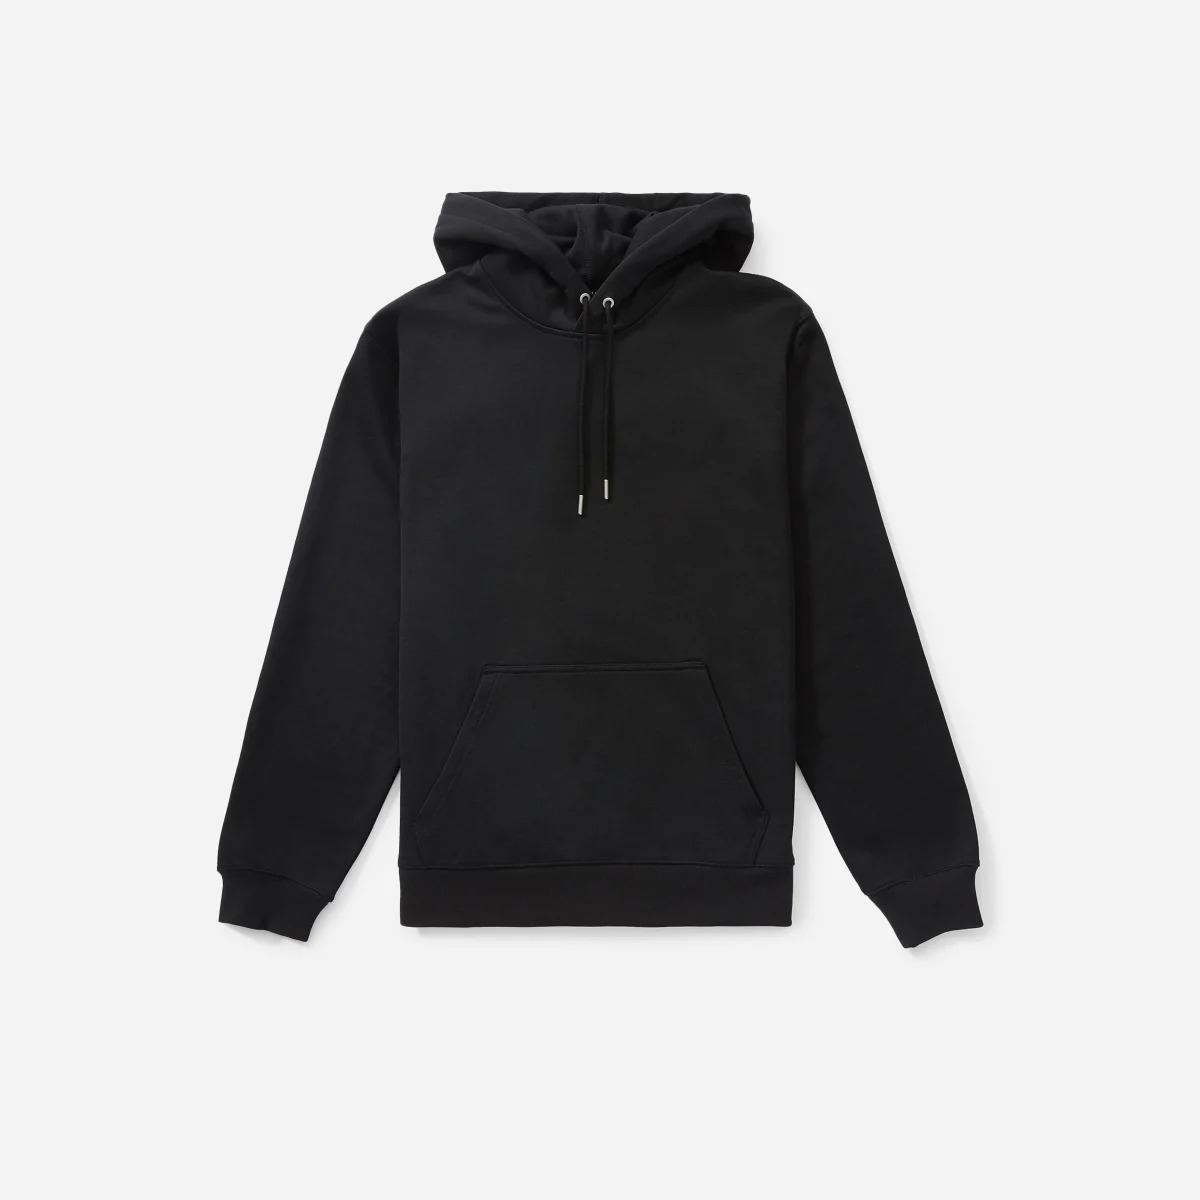 Everlane French Terry Hoodie in black, best hoodie brands